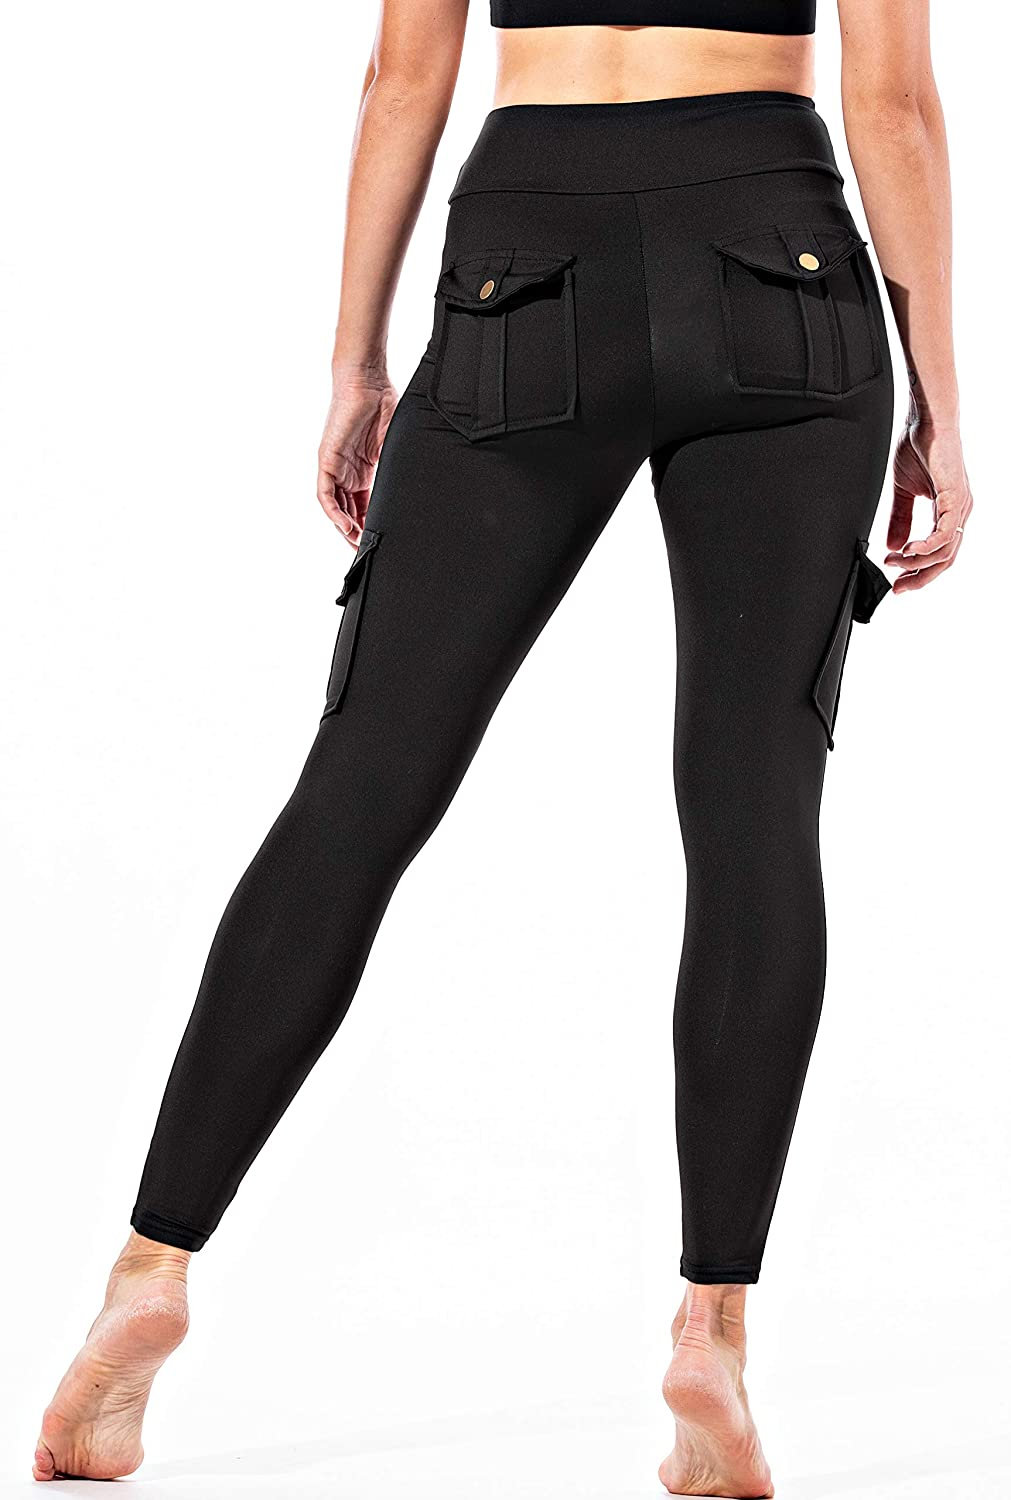 High Waisted Pants for Women OUT /& ABOUT Lexi Cargo Pants for Women Women/'s Casual Leggings Casual Pants with Pockets